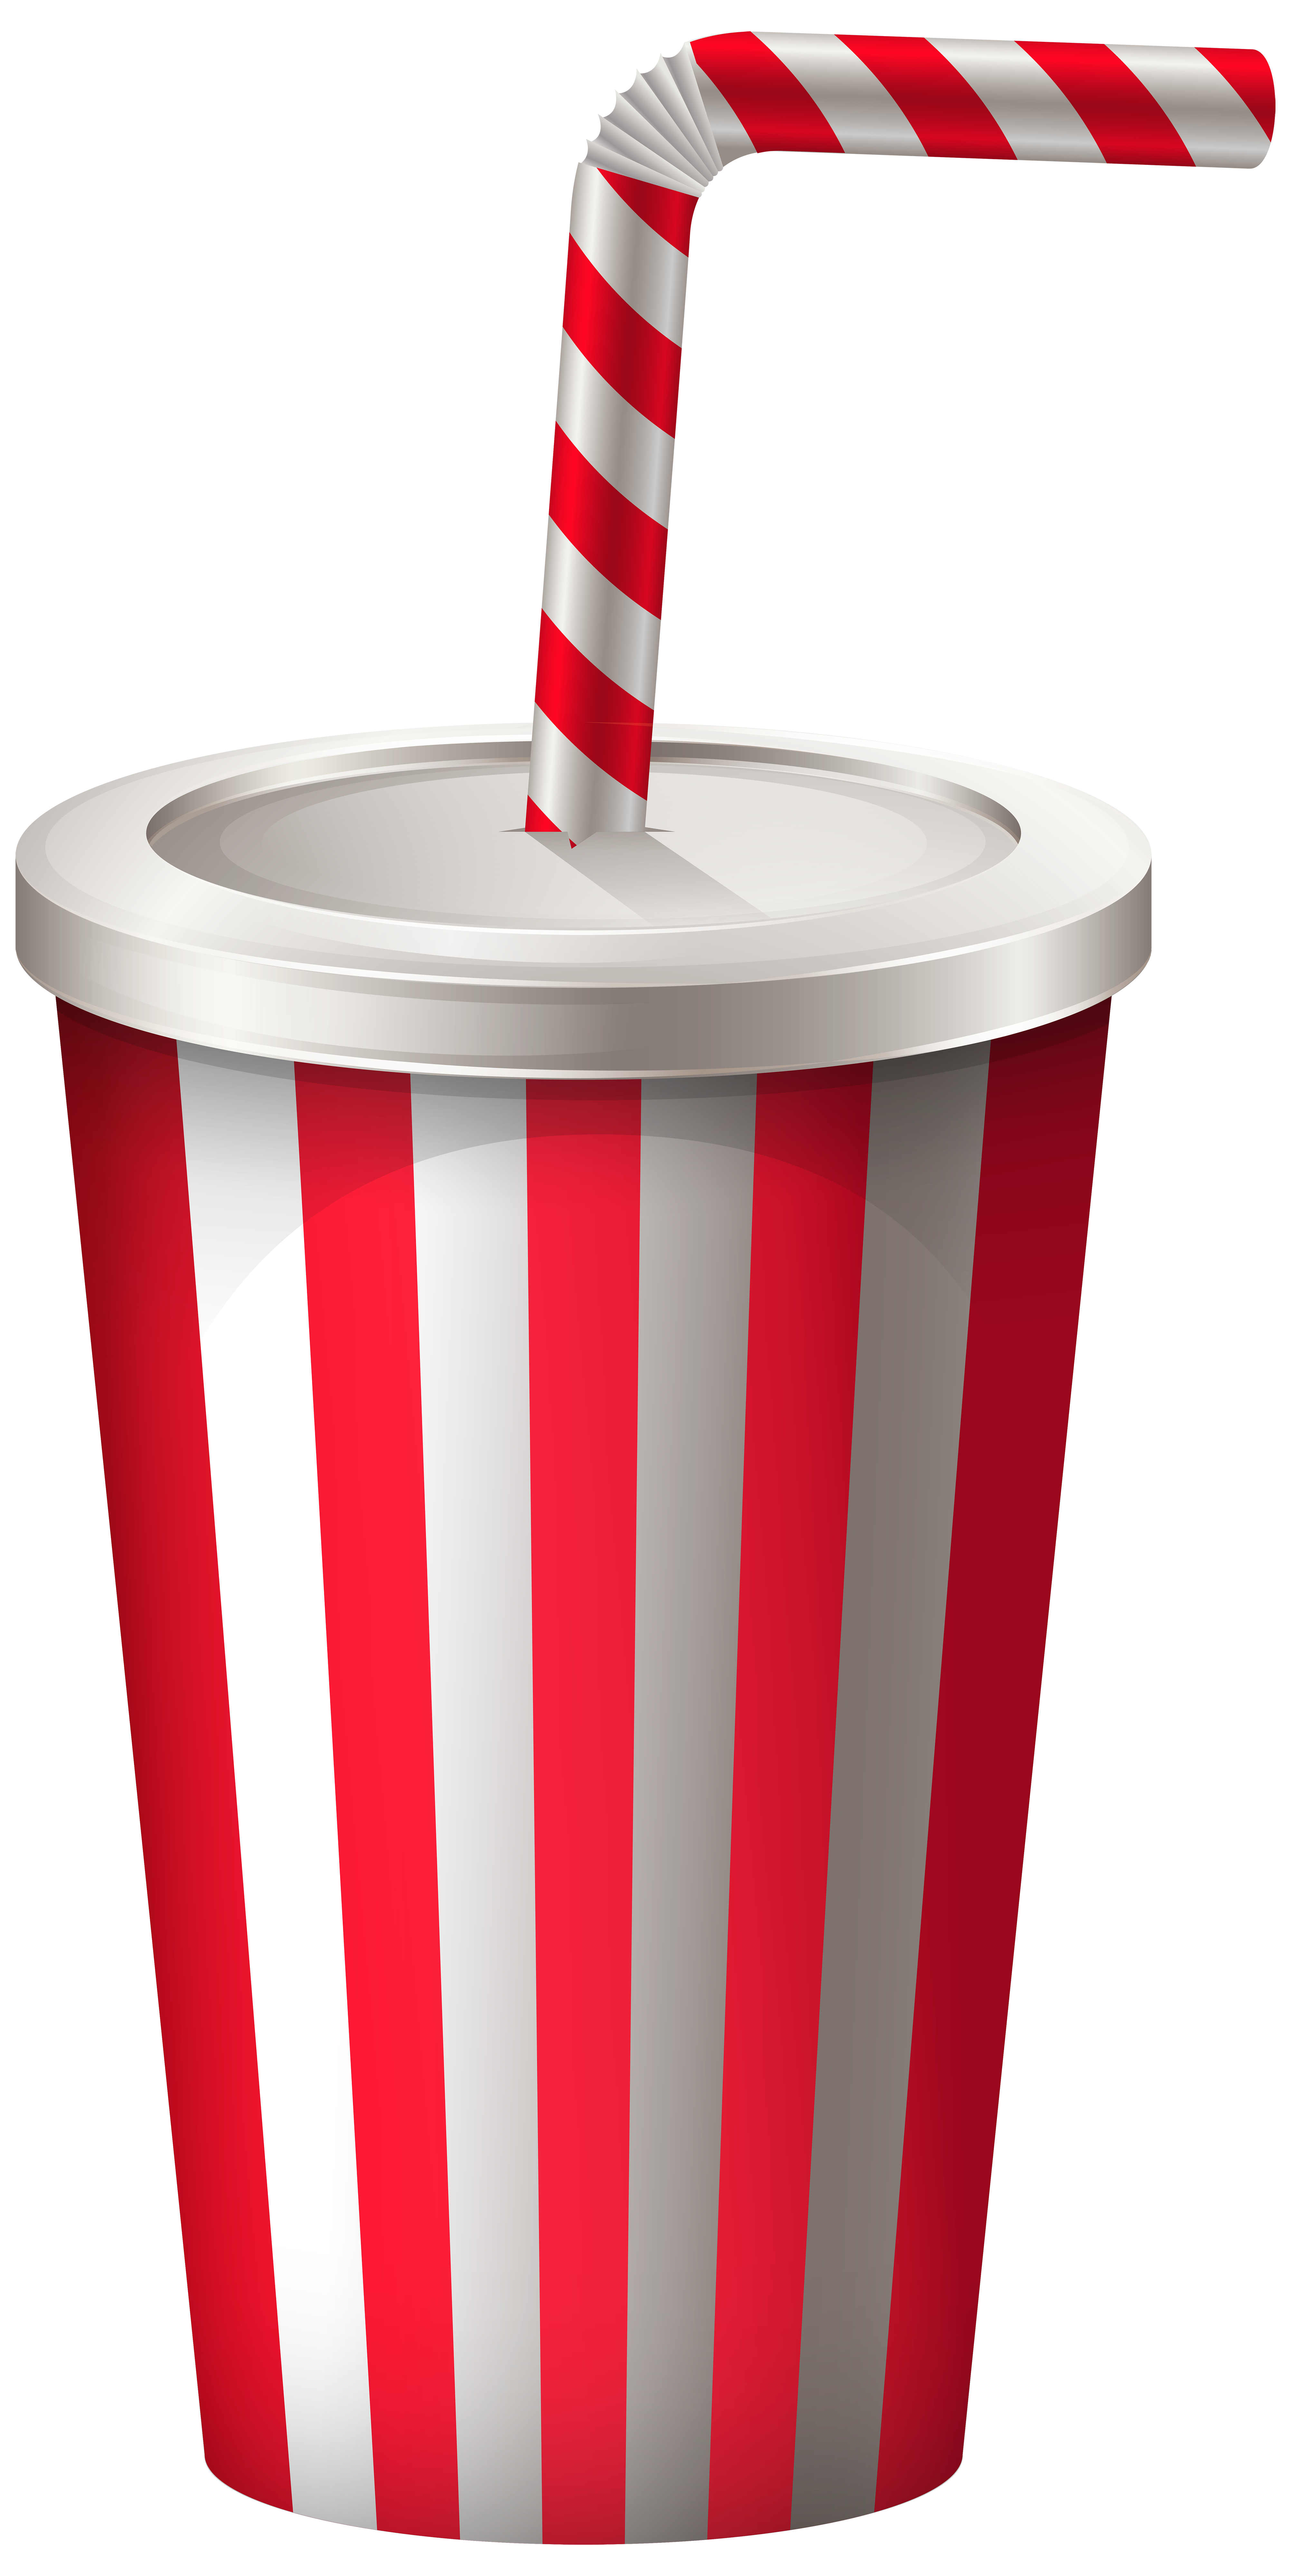 Plastic cup lid and straw clipart png transparent image library download Drink Cup with Straw PNG Transparent Clip Art Image ... image library download